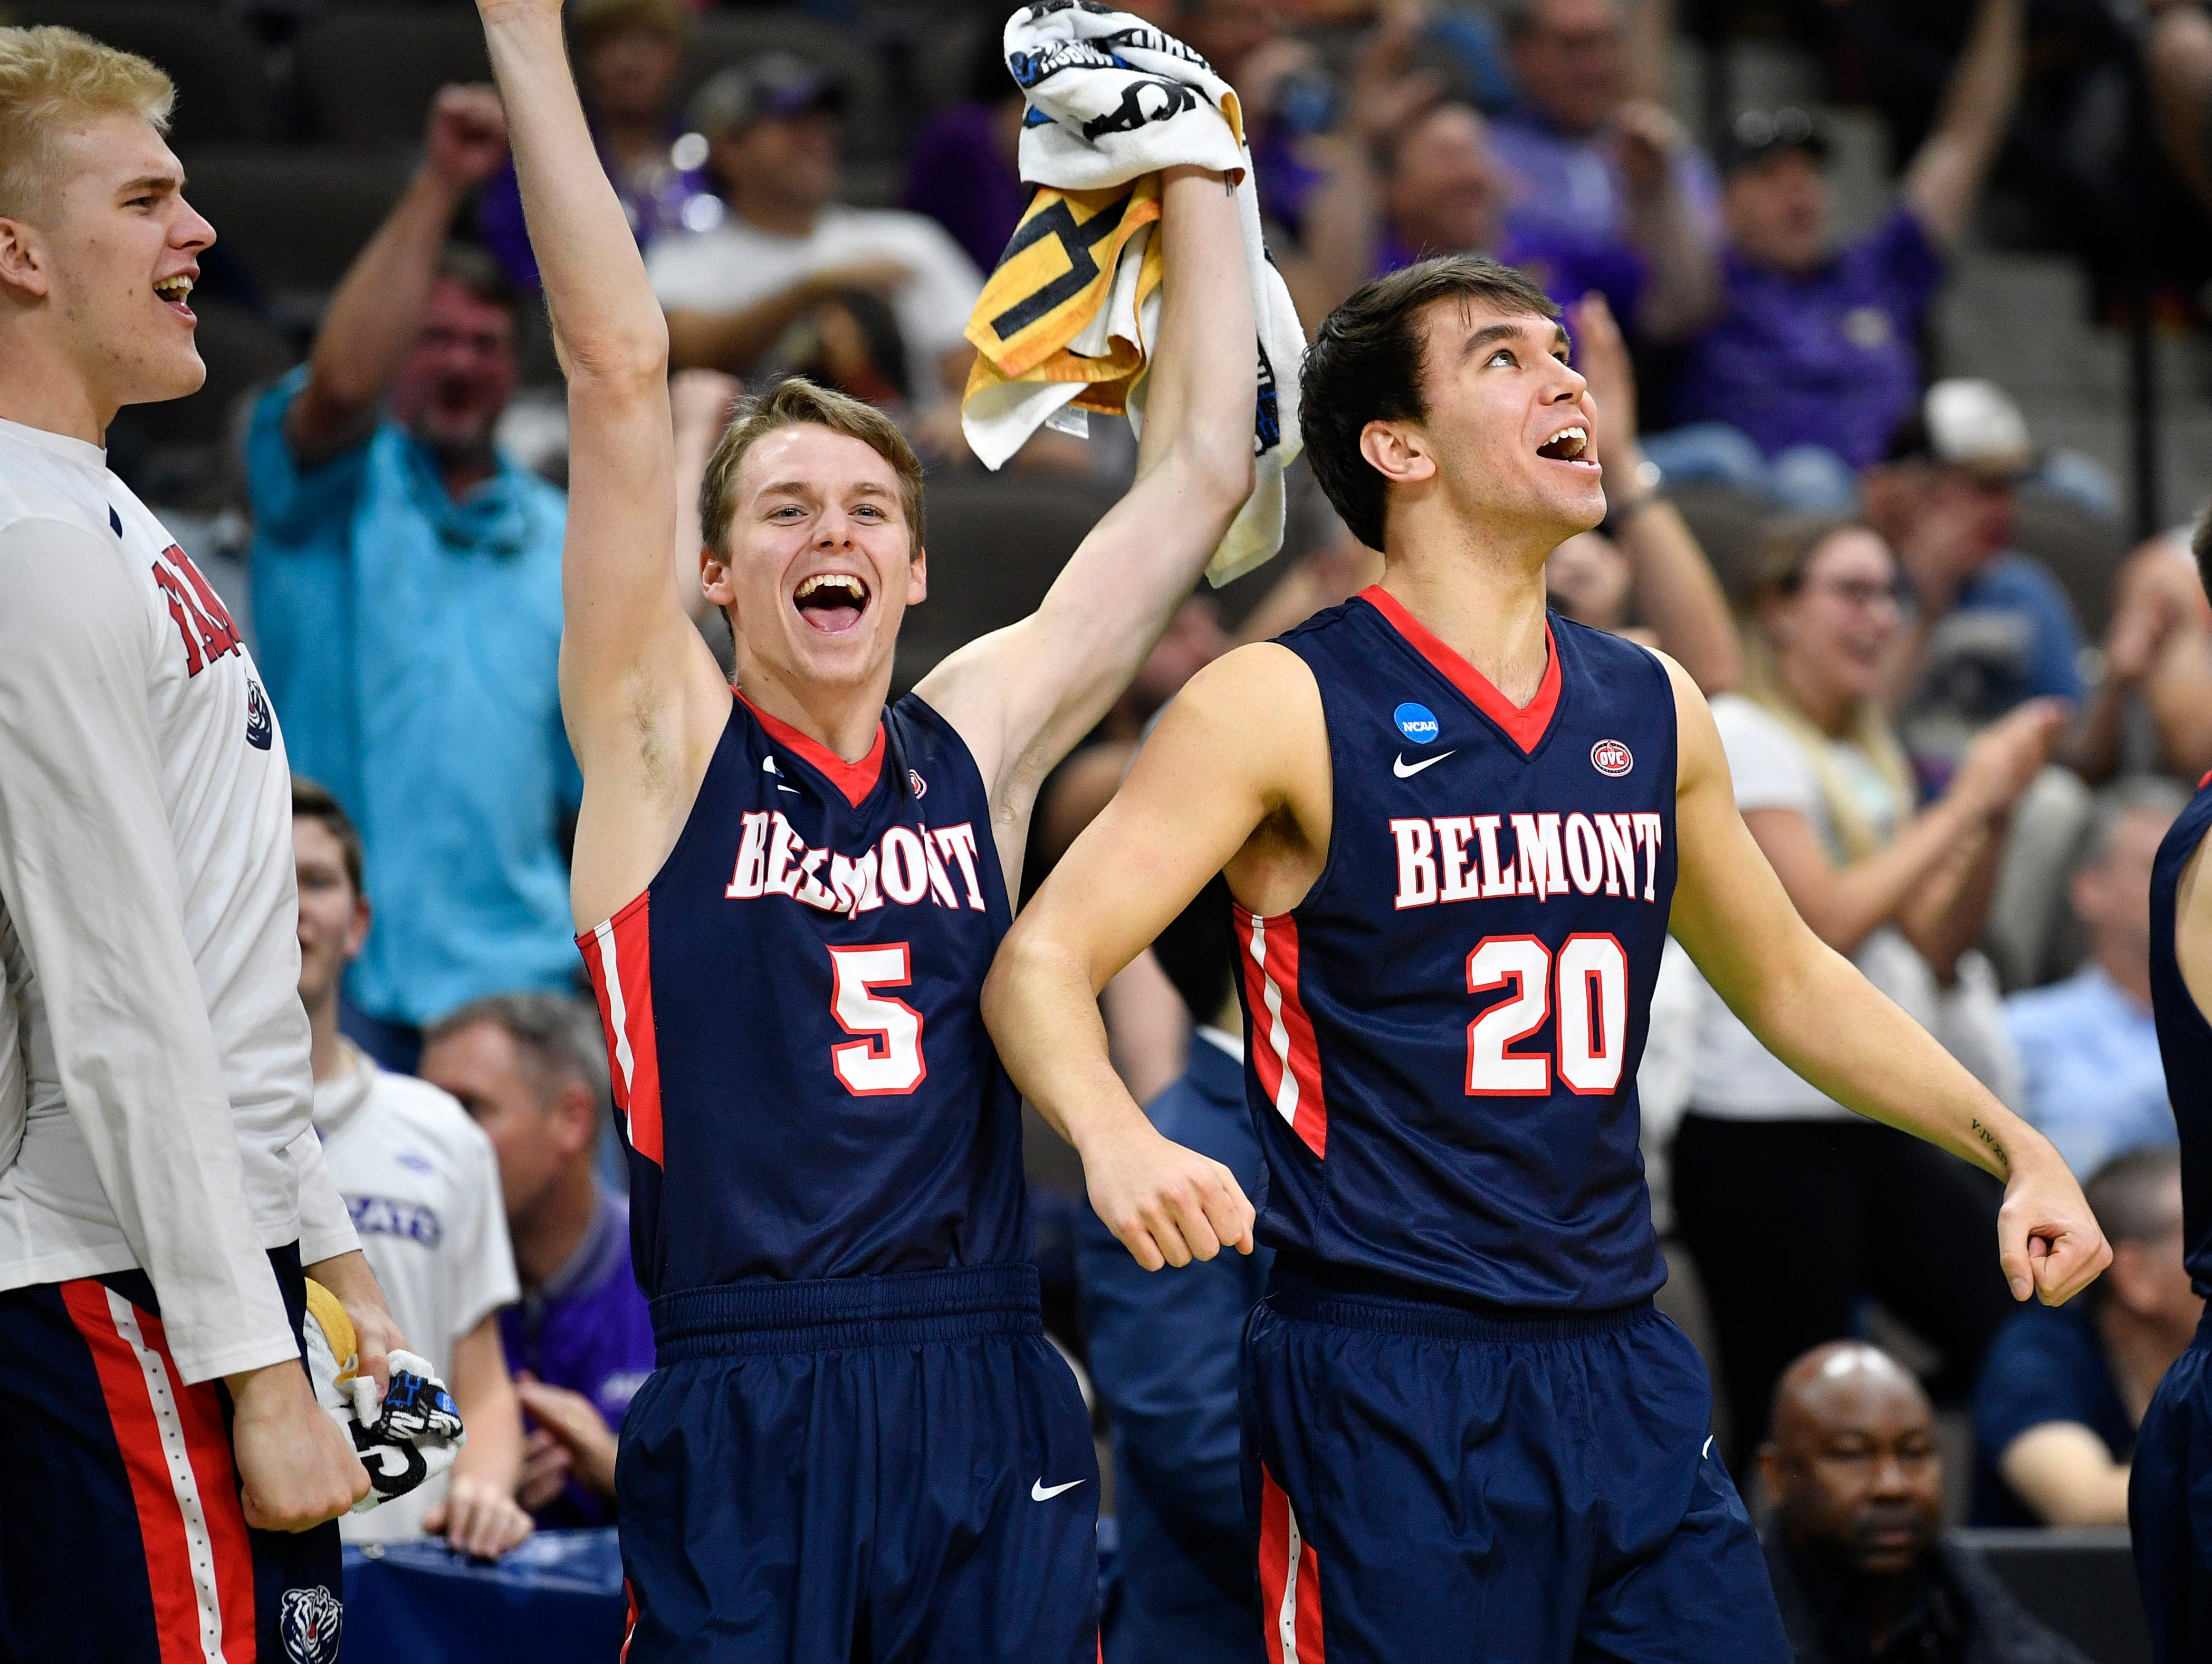 Belmont's bench reacts during the second half of the first-round NCAA college basketball tournament game at VyStar Veterans Memorial Arena in Jacksonville, Fla., Thursday, March 21, 2019.